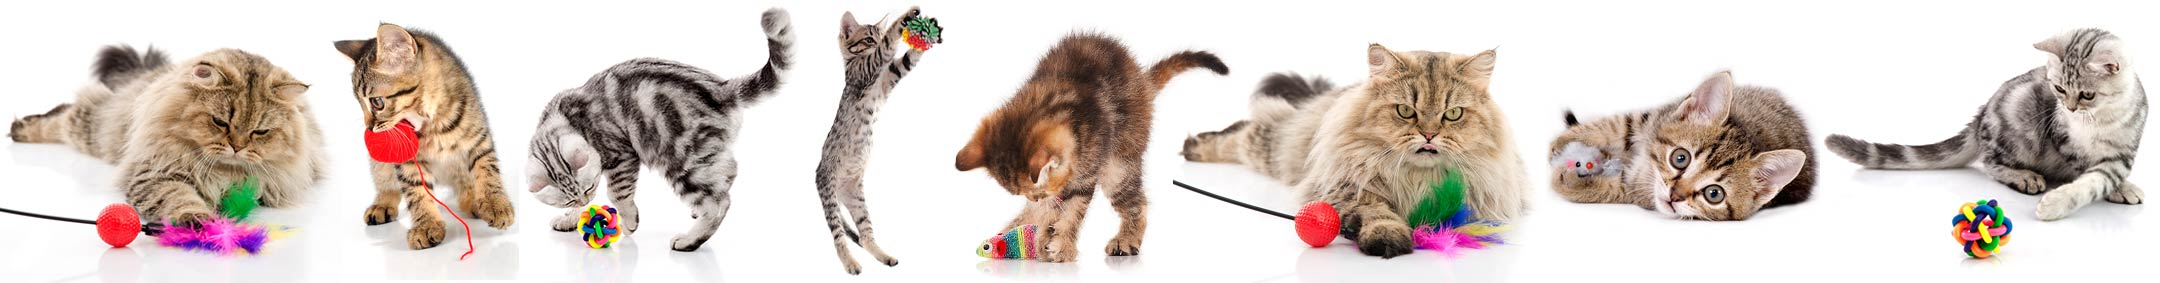 A Bunch of Cats and Kittens playing with chaser toys and catnip balls